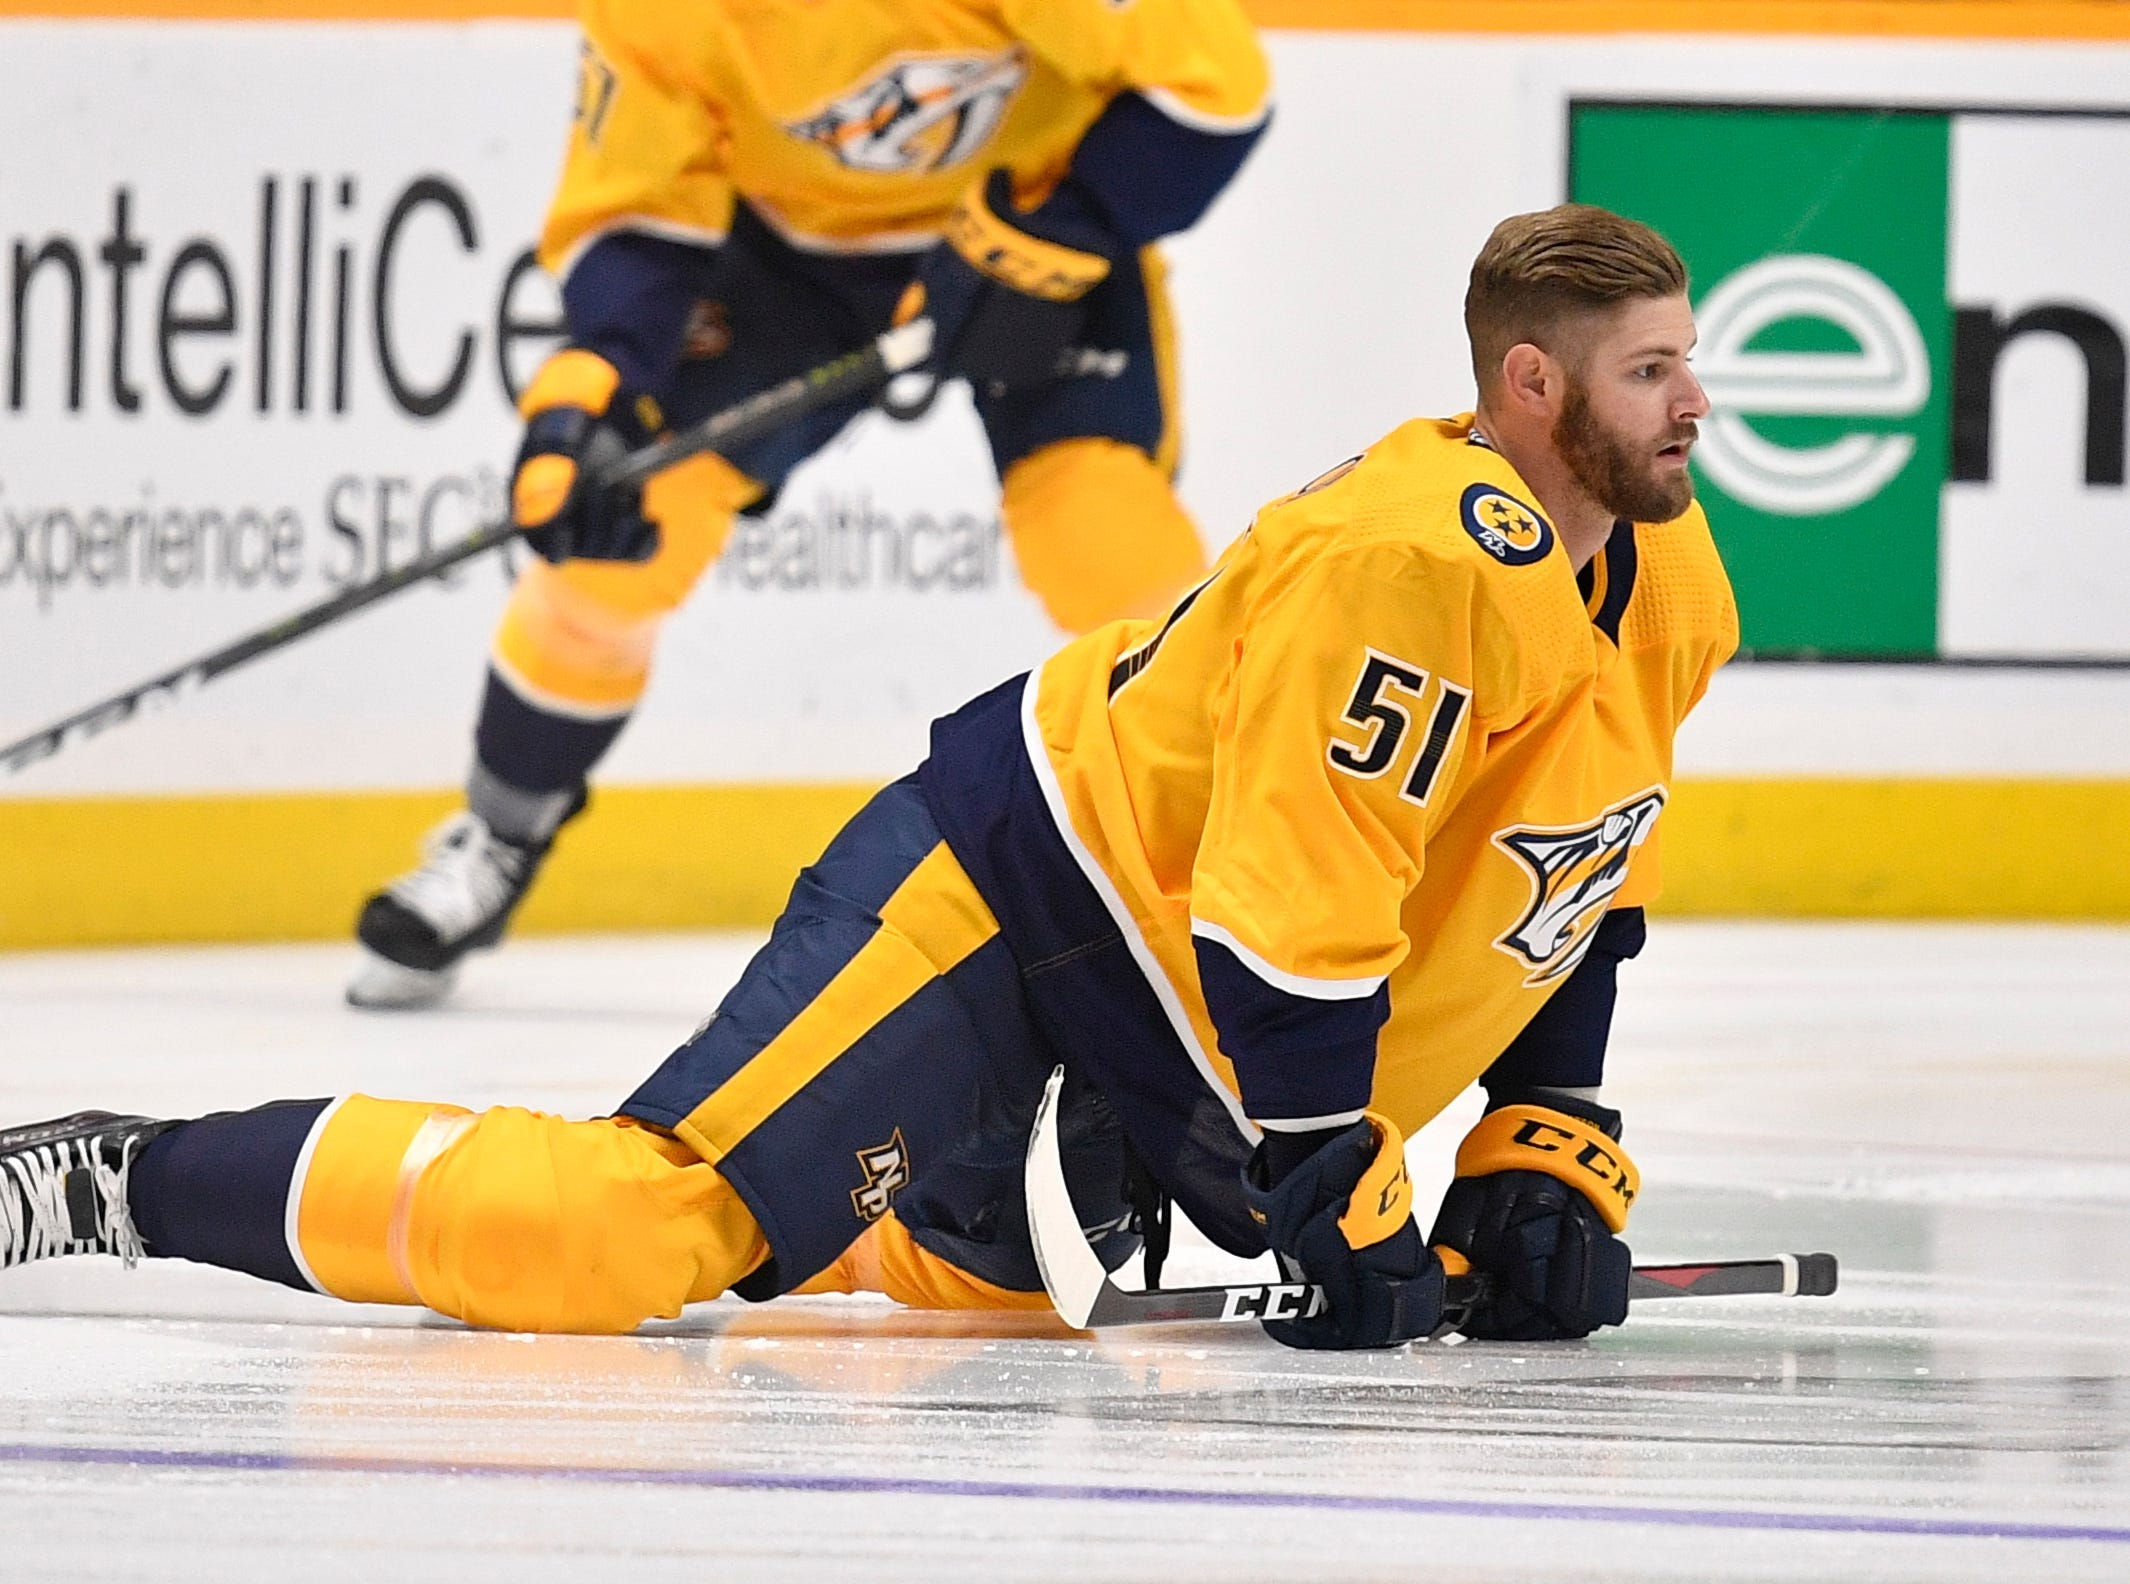 Nashville Predators left wing Austin Watson (51) warms up before divisional semifinal game against the Dallas Stars at Bridgestone Arena in Nashville, Tenn., Wednesday, April 10, 2019.